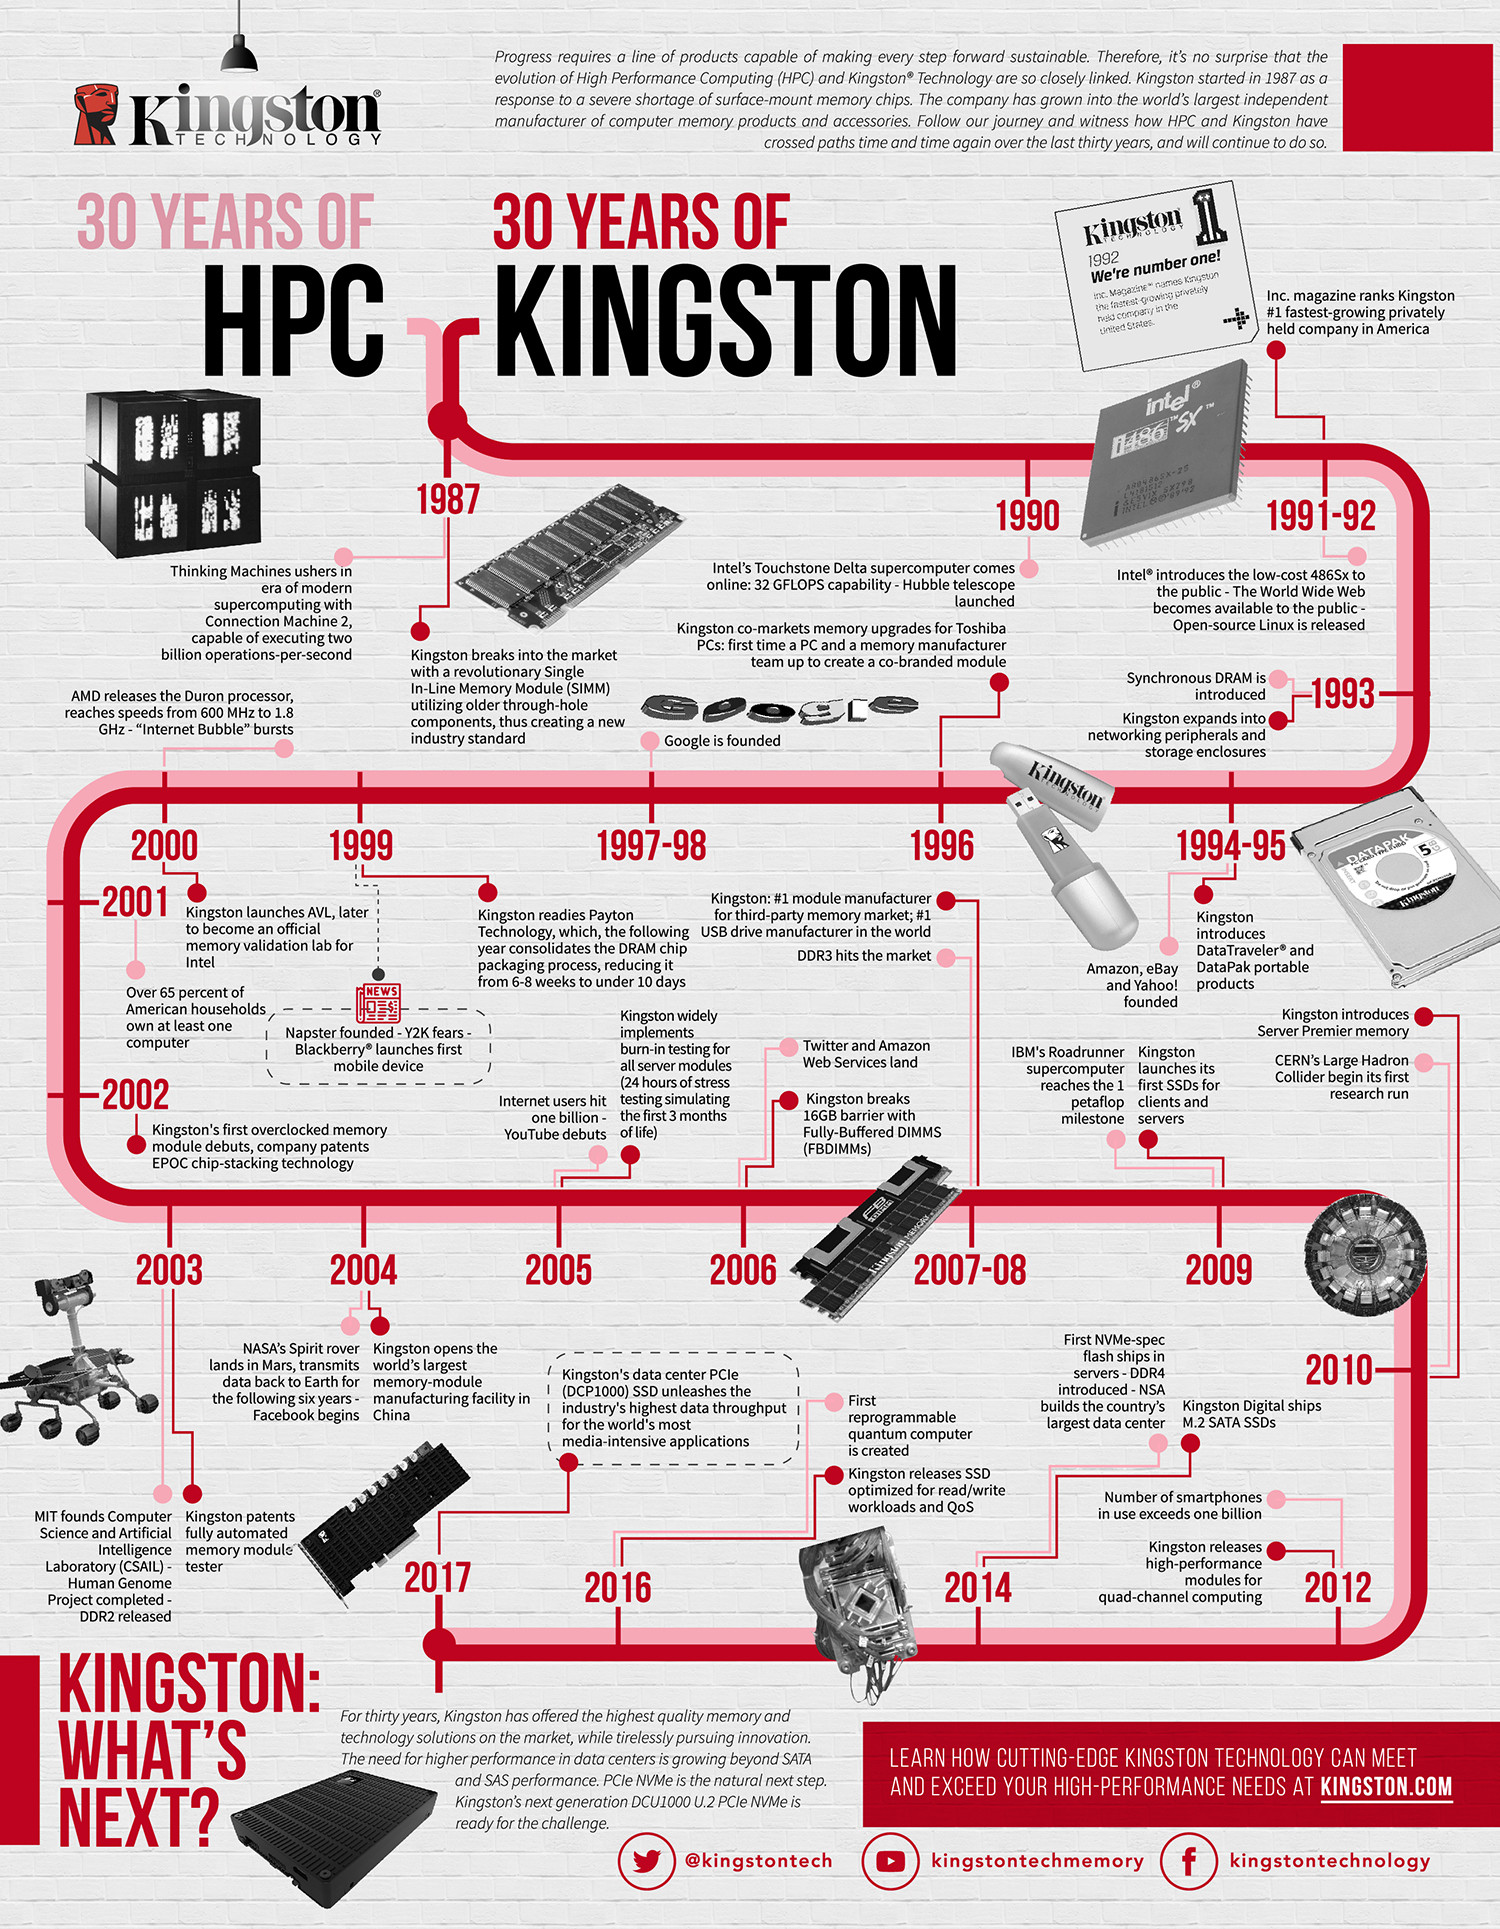 30 Years of Kingston Infographic